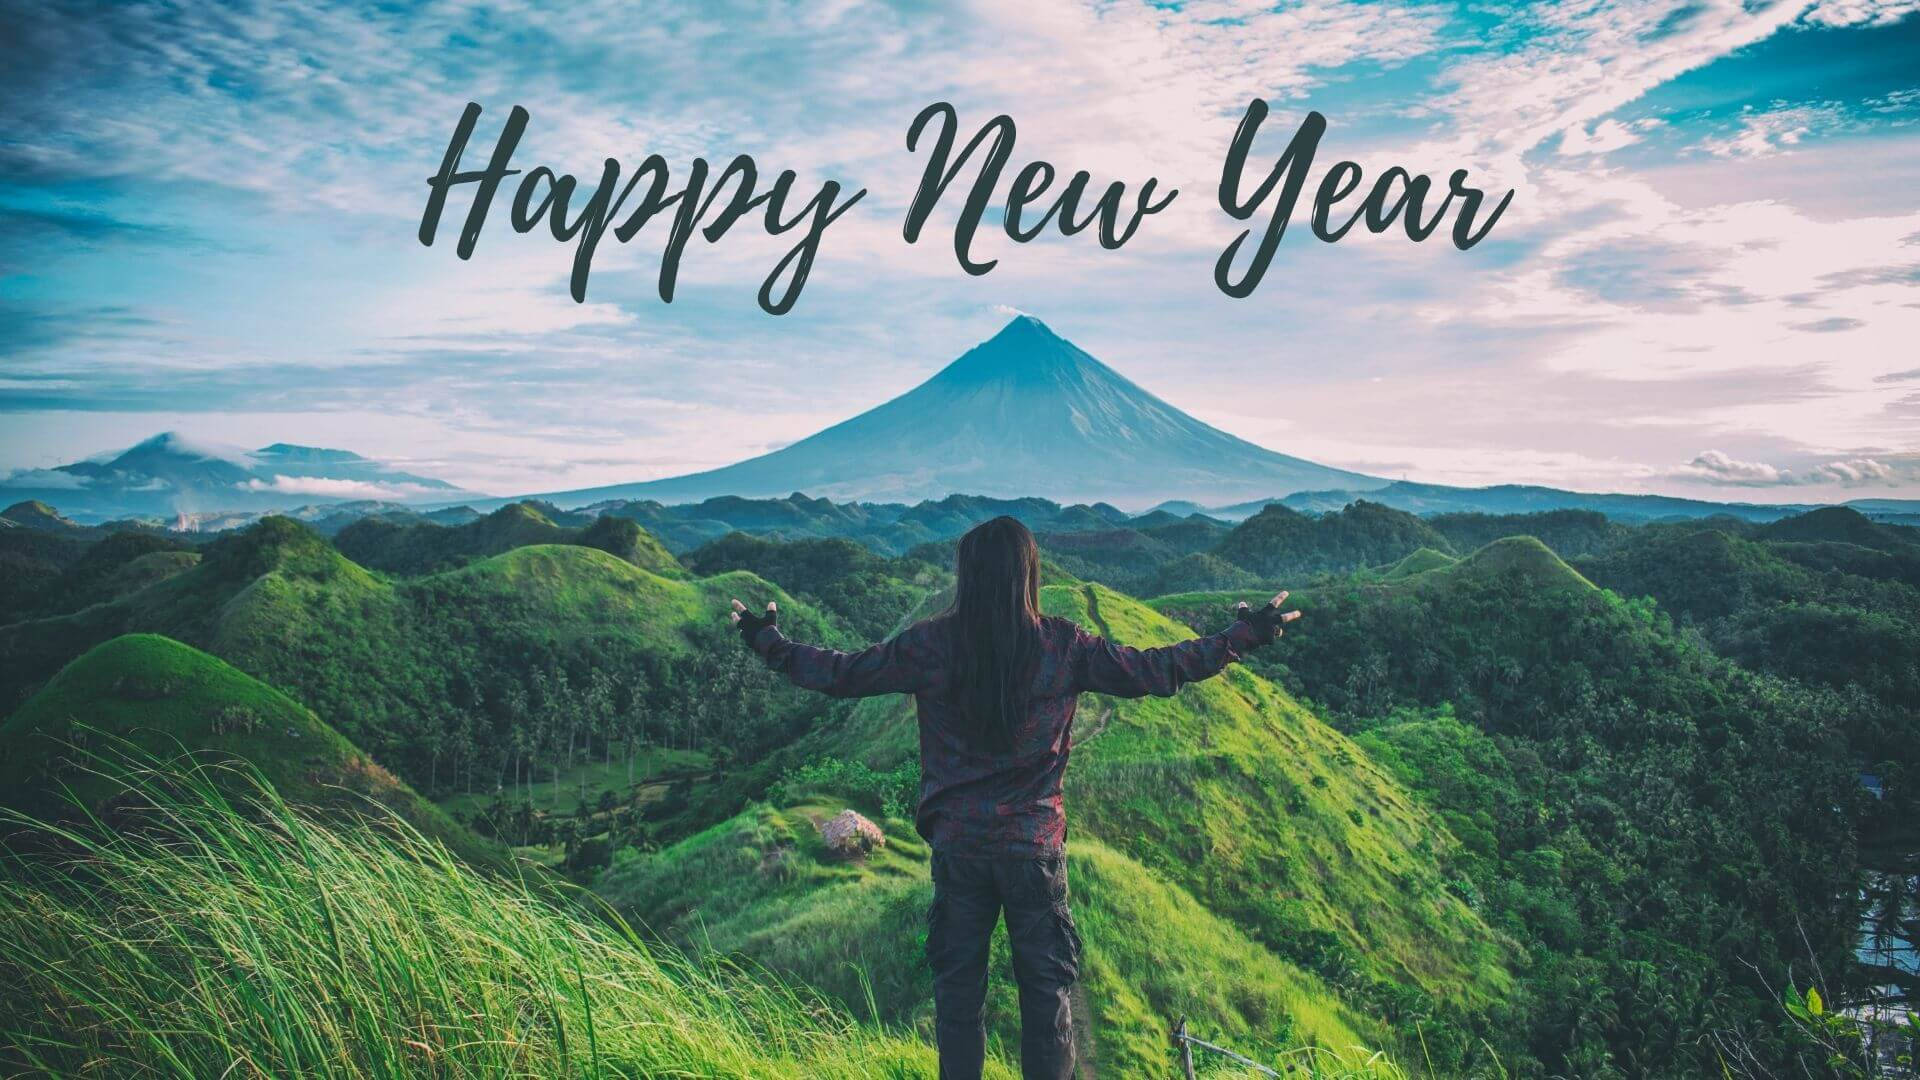 Happy New Year Image from Hill